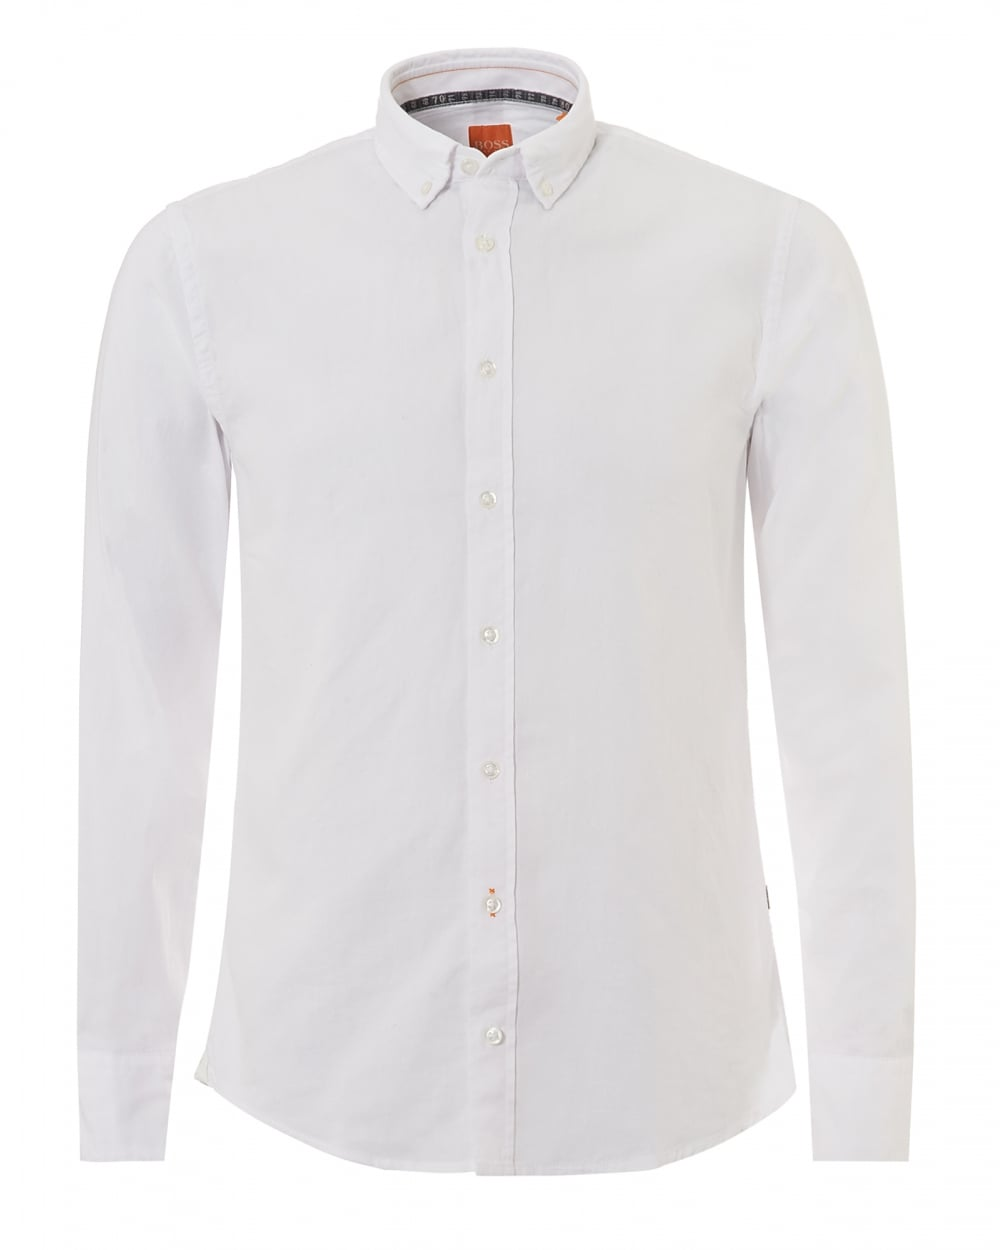 new design best place reasonable price Mens Epreppy Shirt, Slim Fit White Cotton Shirt